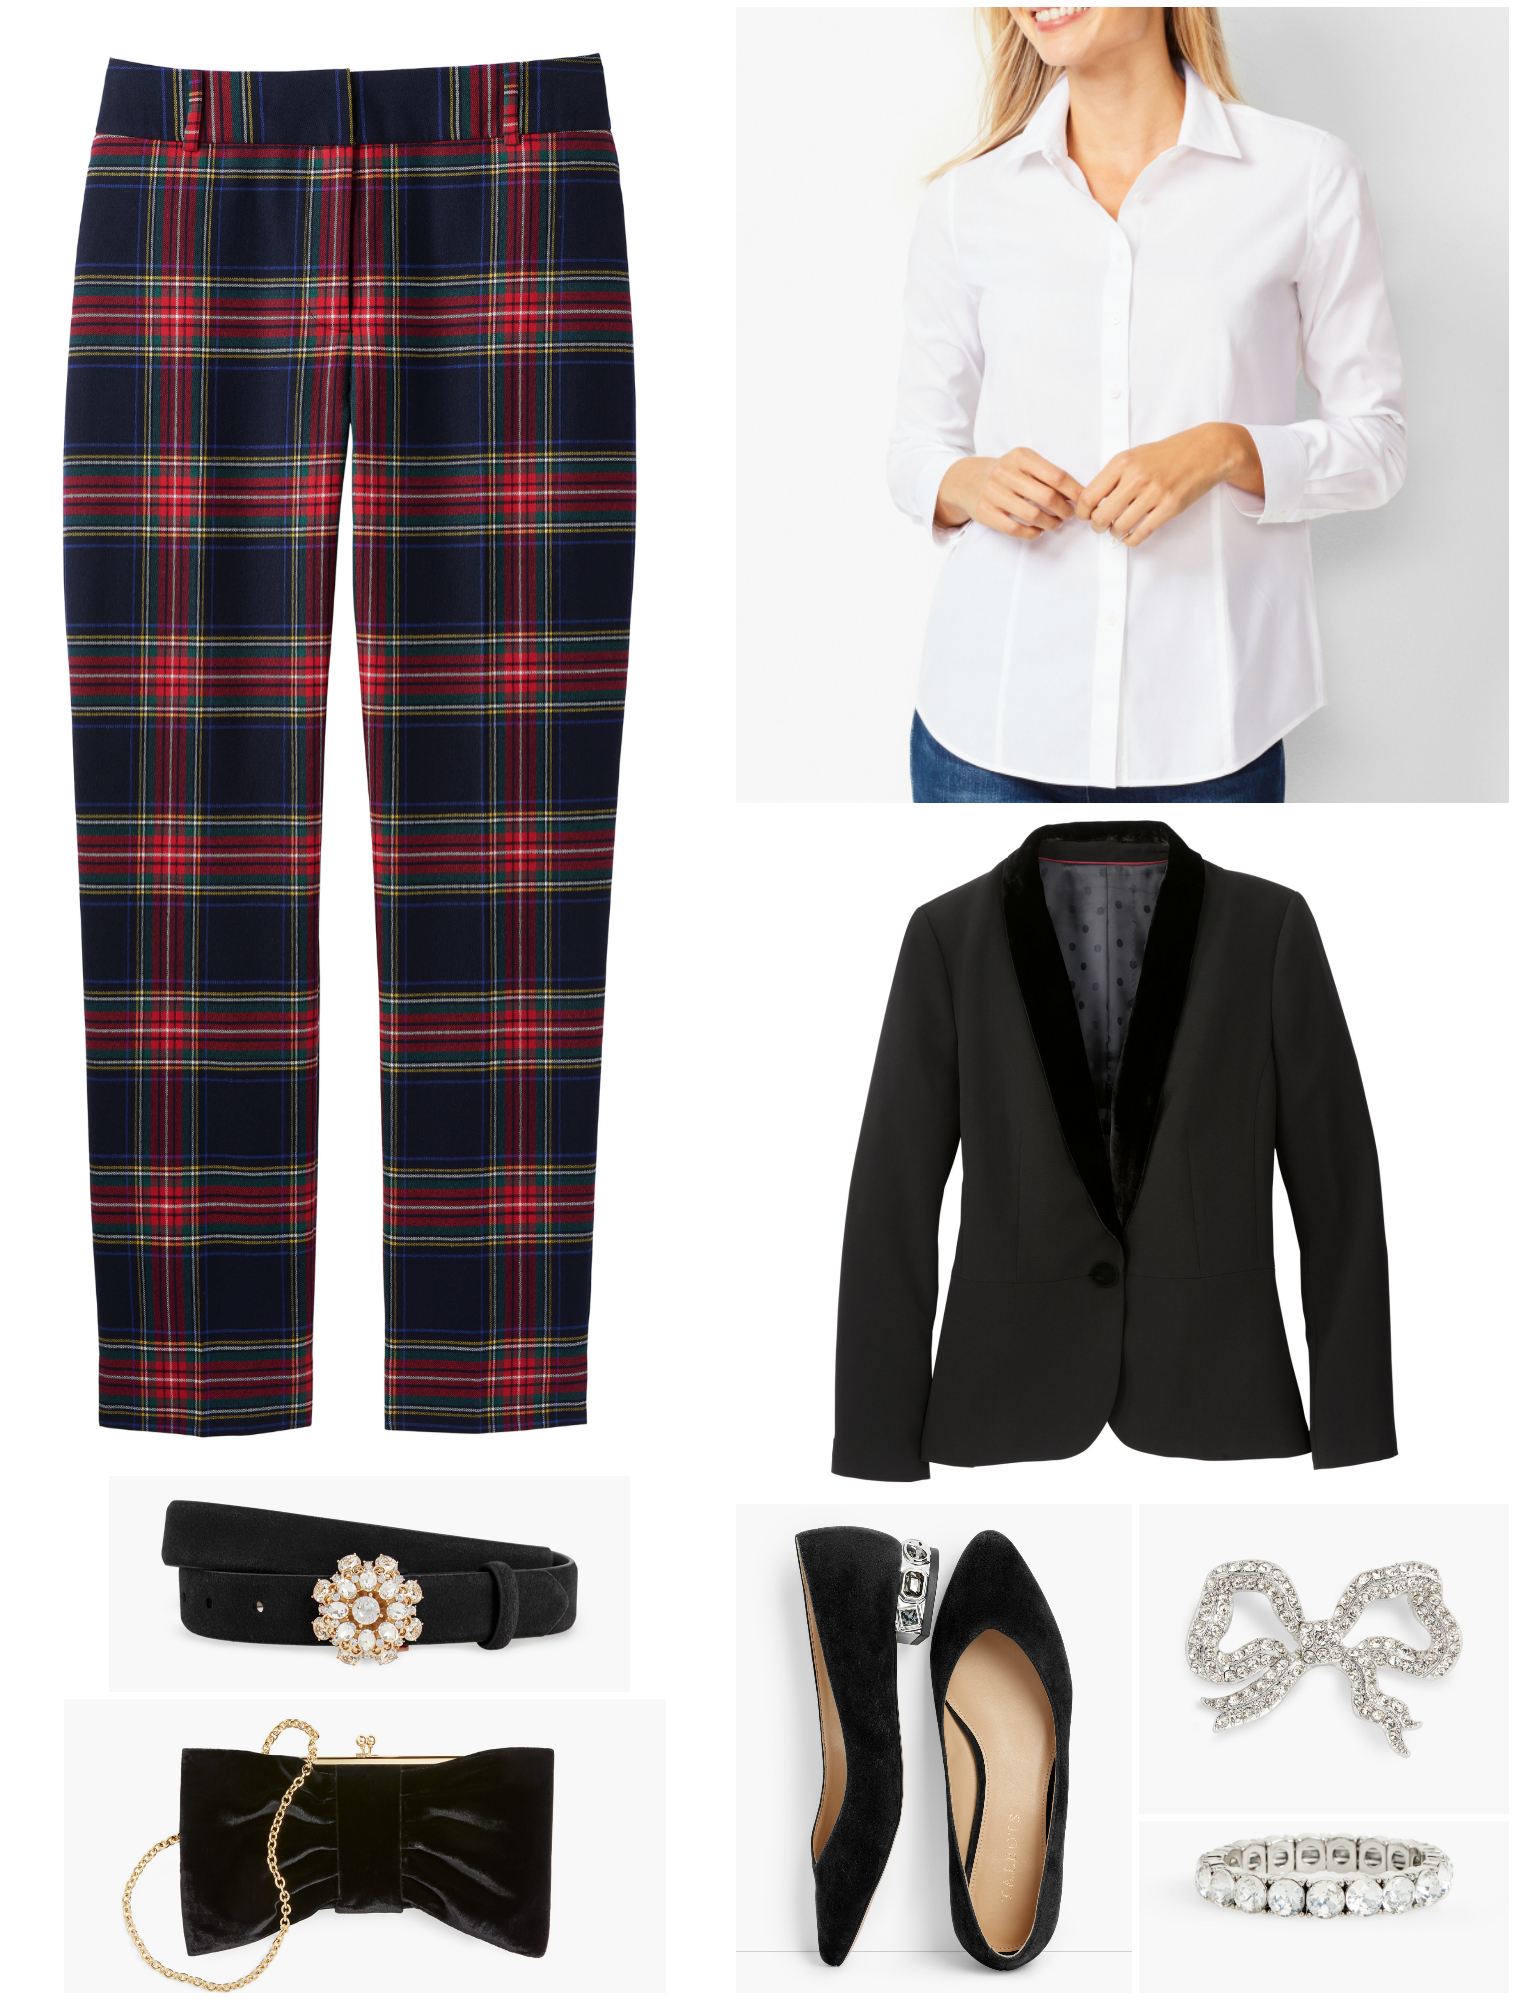 By switching out the pumps and velvet tank for a crisp white shirt and embellished flats, the plaid pants still look elegant but not as formal.